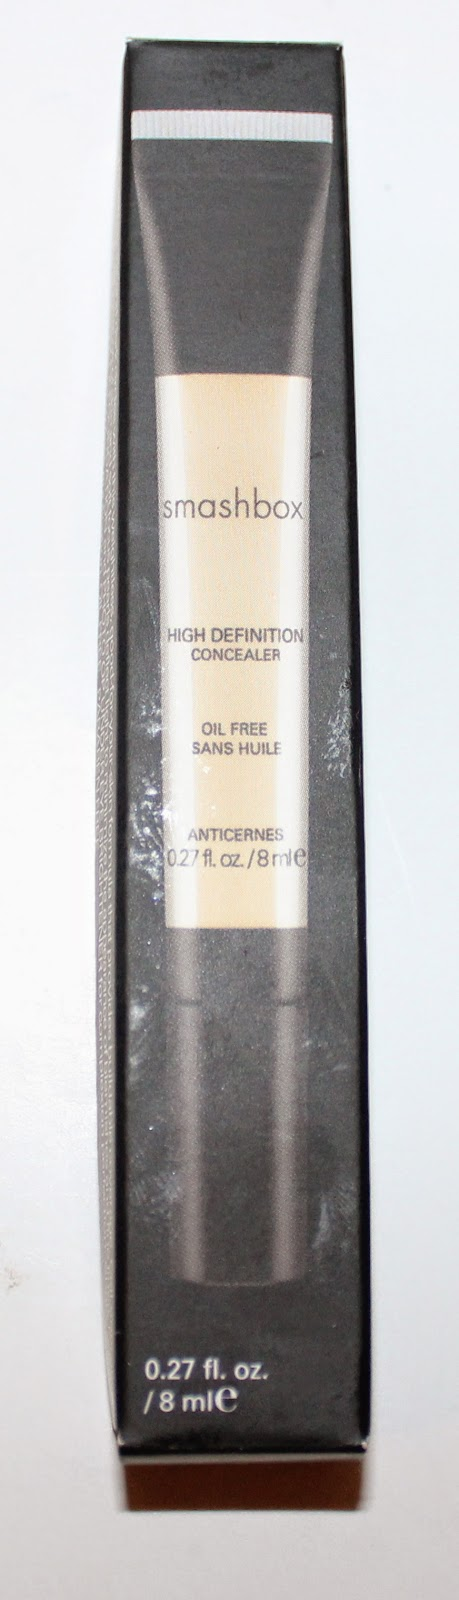 Smashbox High Definition Concealer in Fair/Light Packaging